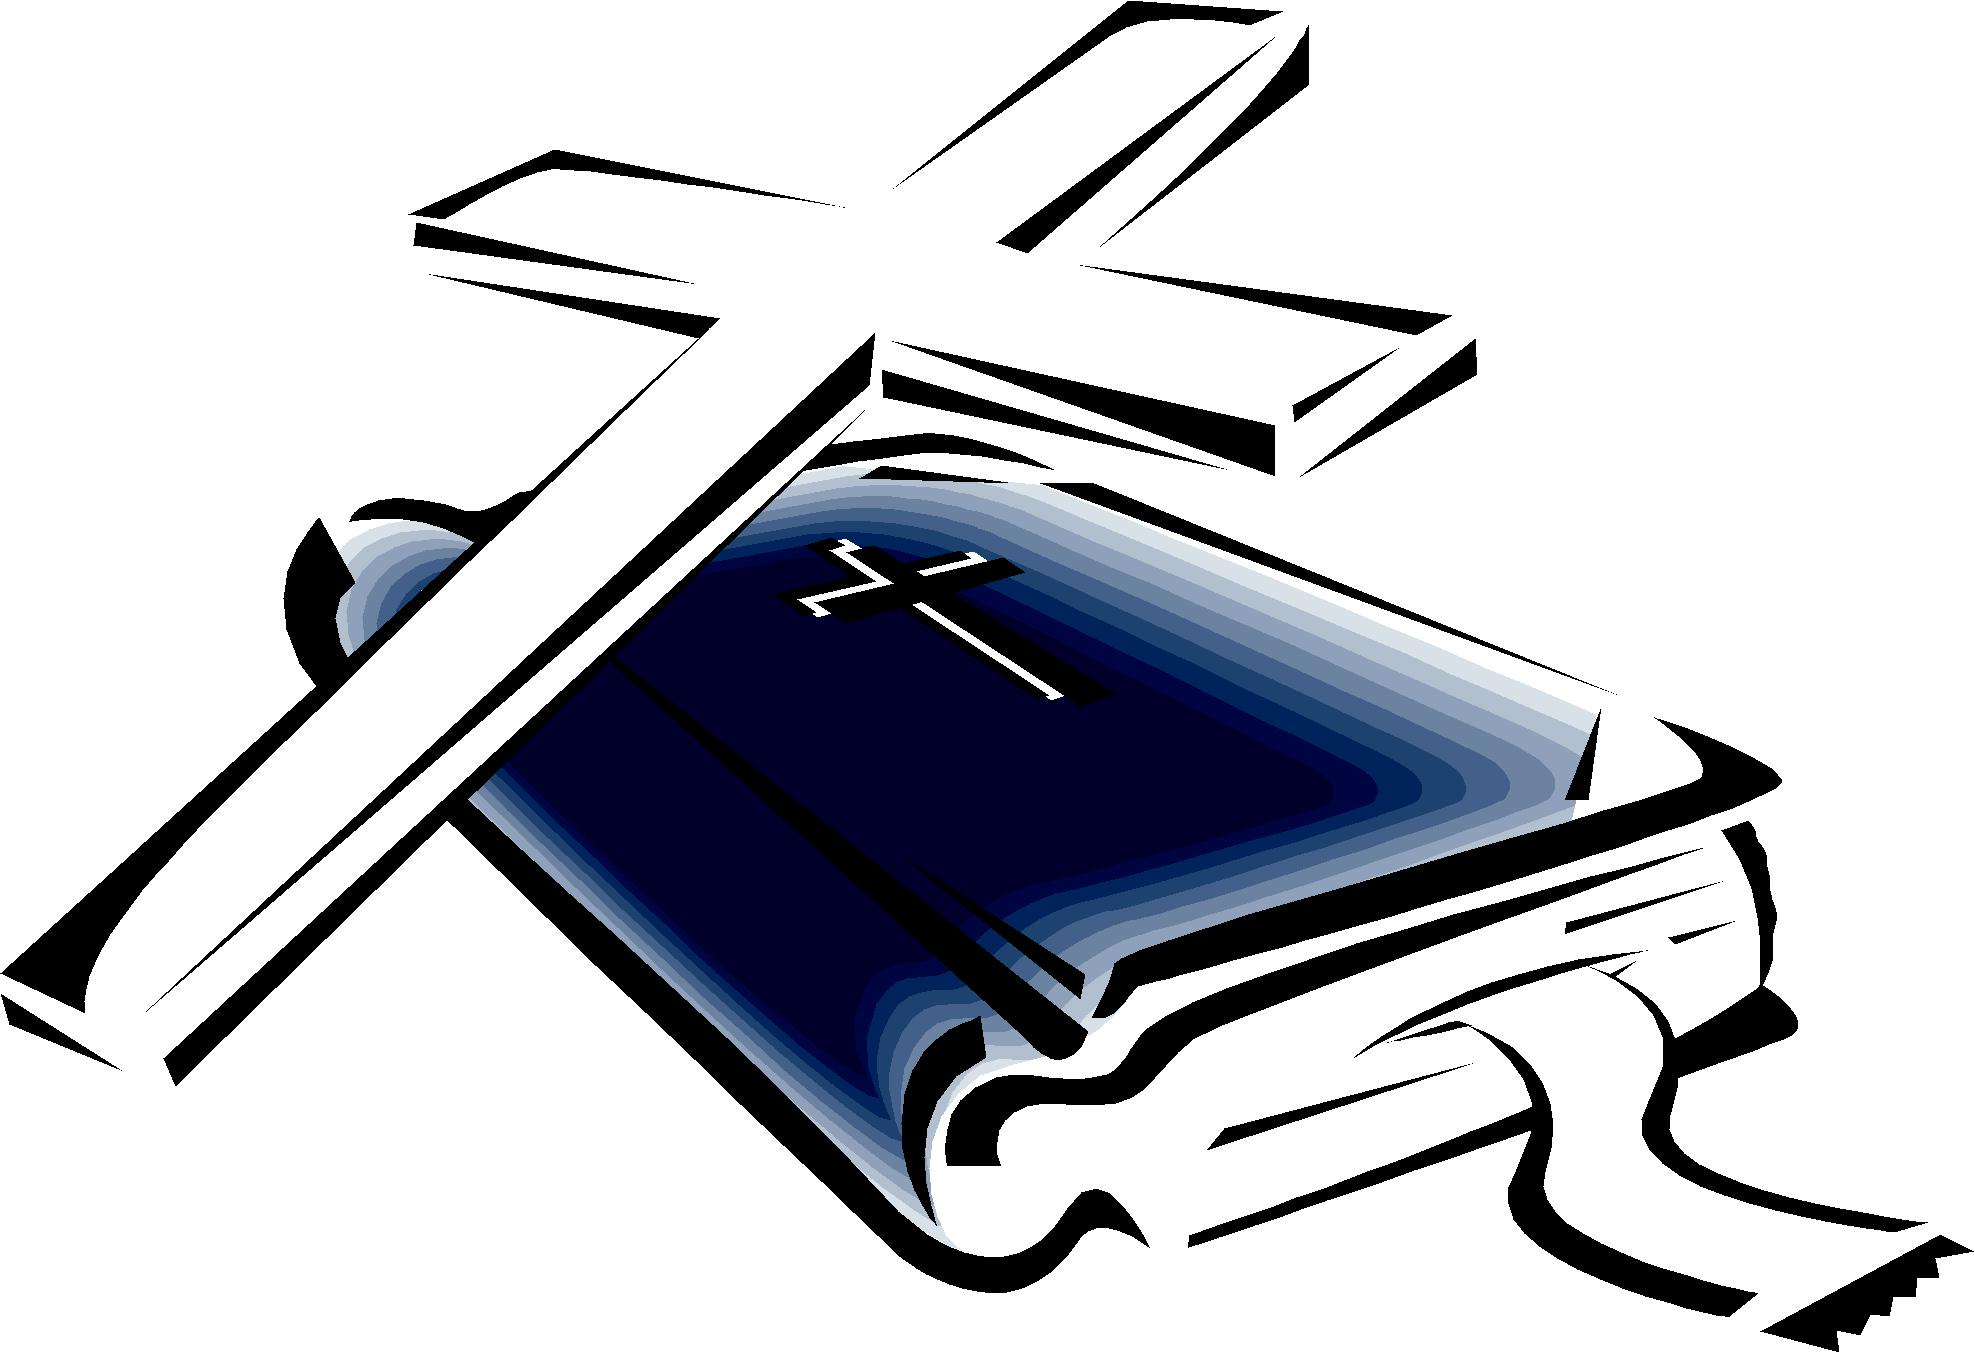 Bible cliparts picture free library Cross And Bible Clipart - Clipart Kid picture free library